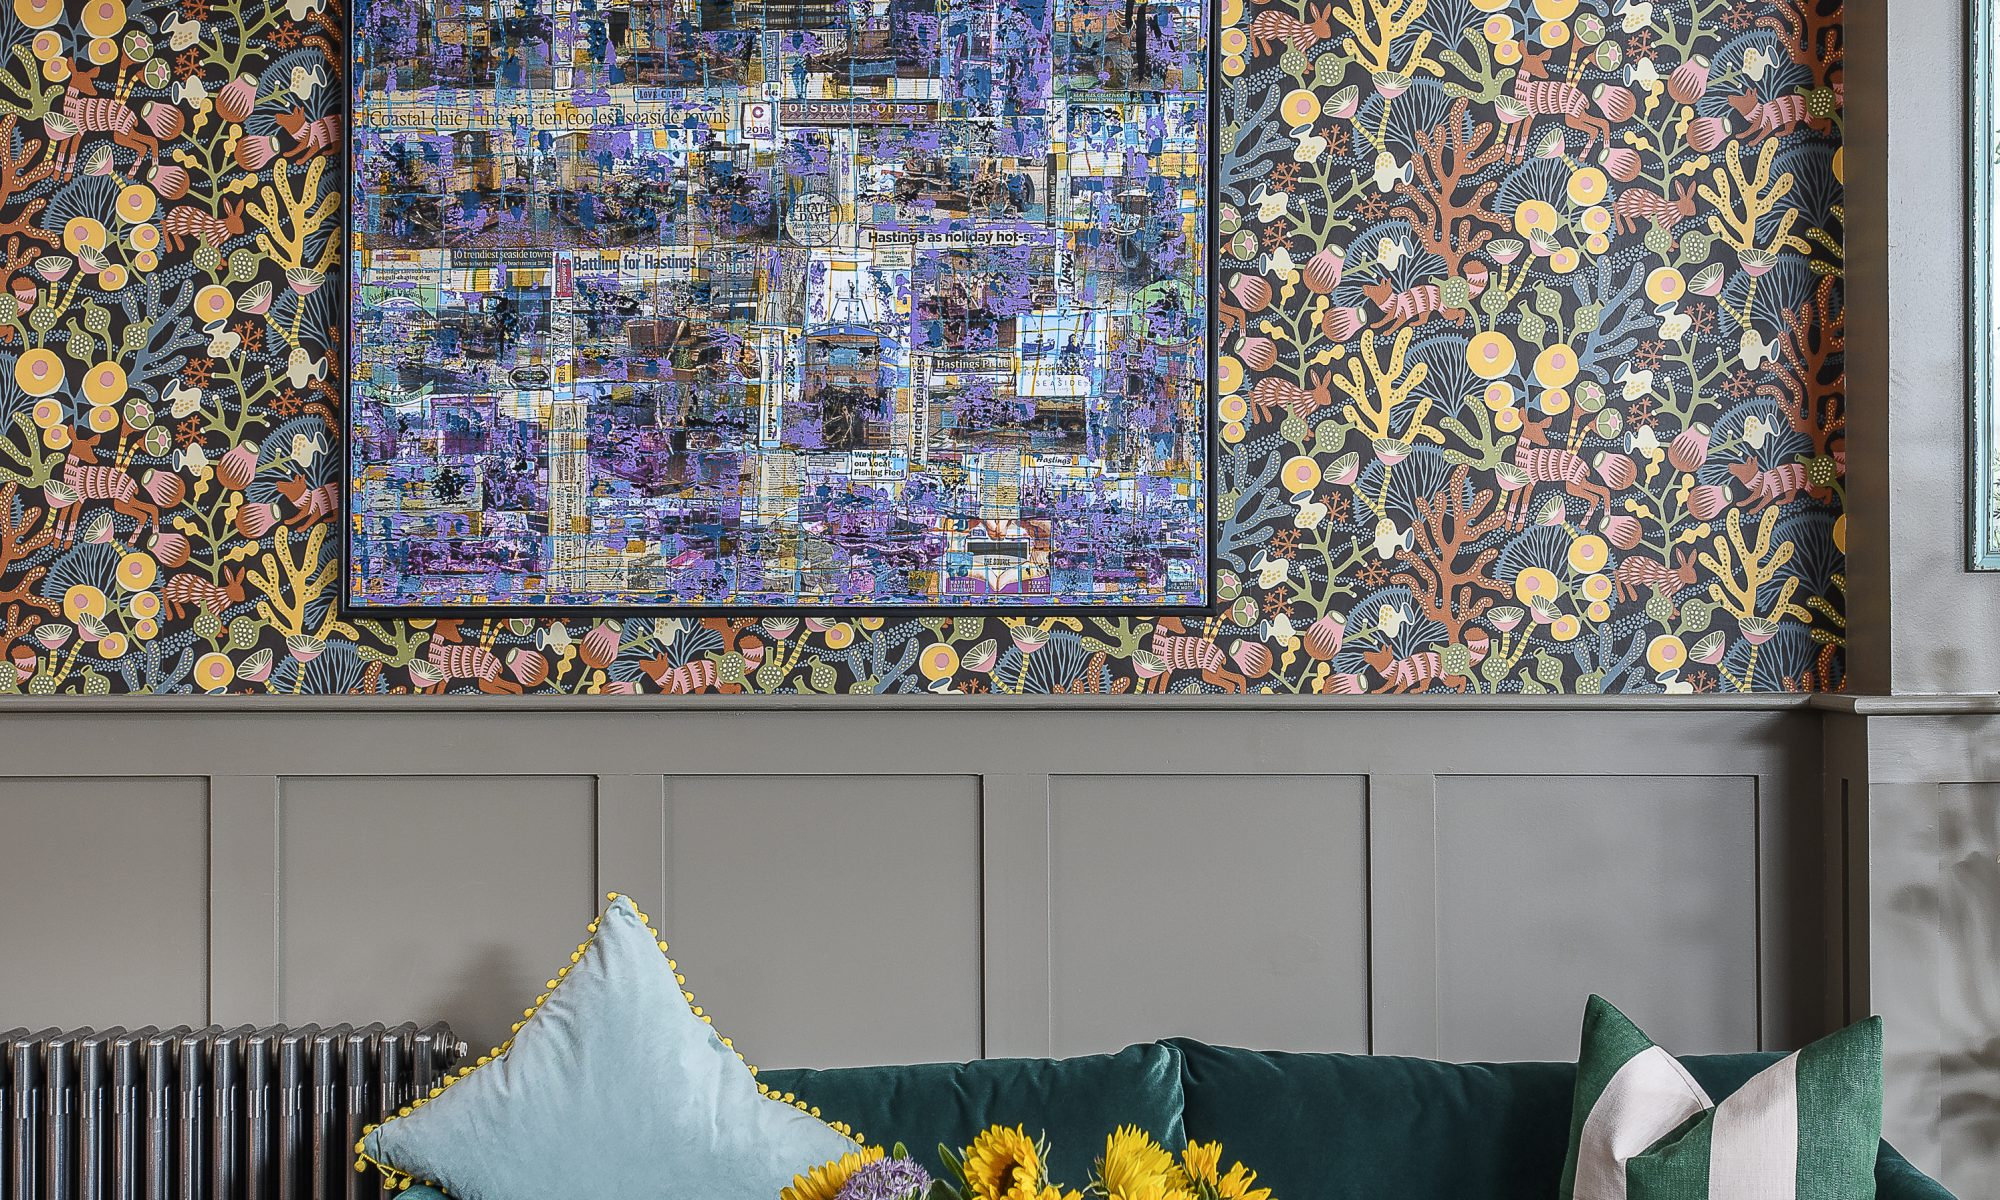 Previous pages & below: Half of the double reception room, set at the back of the building, houses the soft seating area. Charlotte has not shied away from pattern: two different colourways of the same Borastapeter Korallang wallpaper lines the walls here